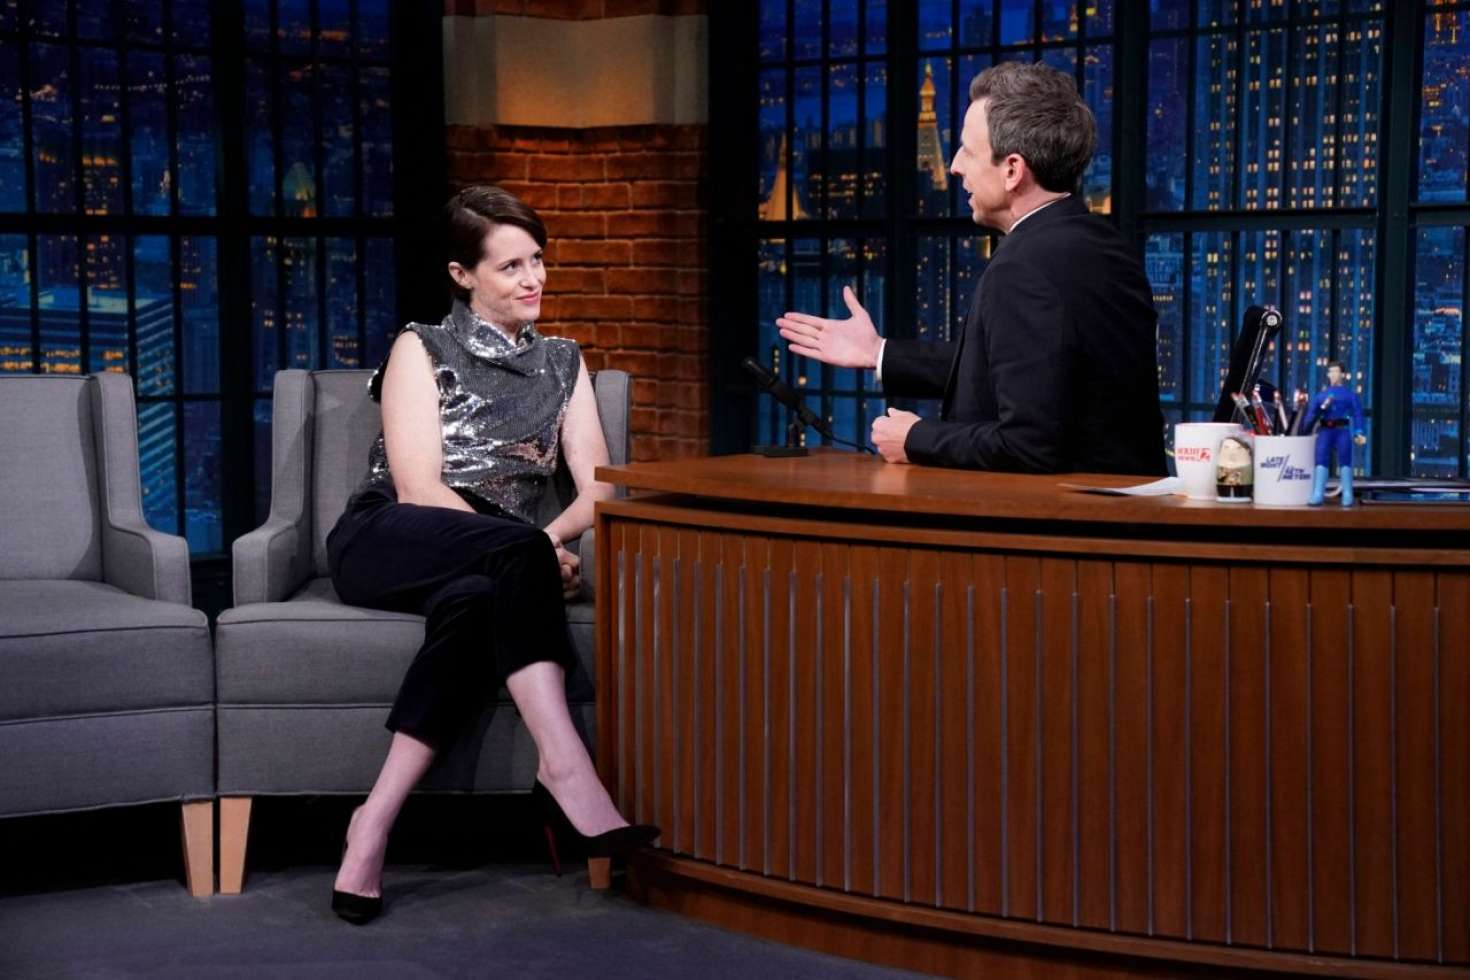 Claire Foy 2018 : Claire Foy on Late Night with Seth Meyers -02